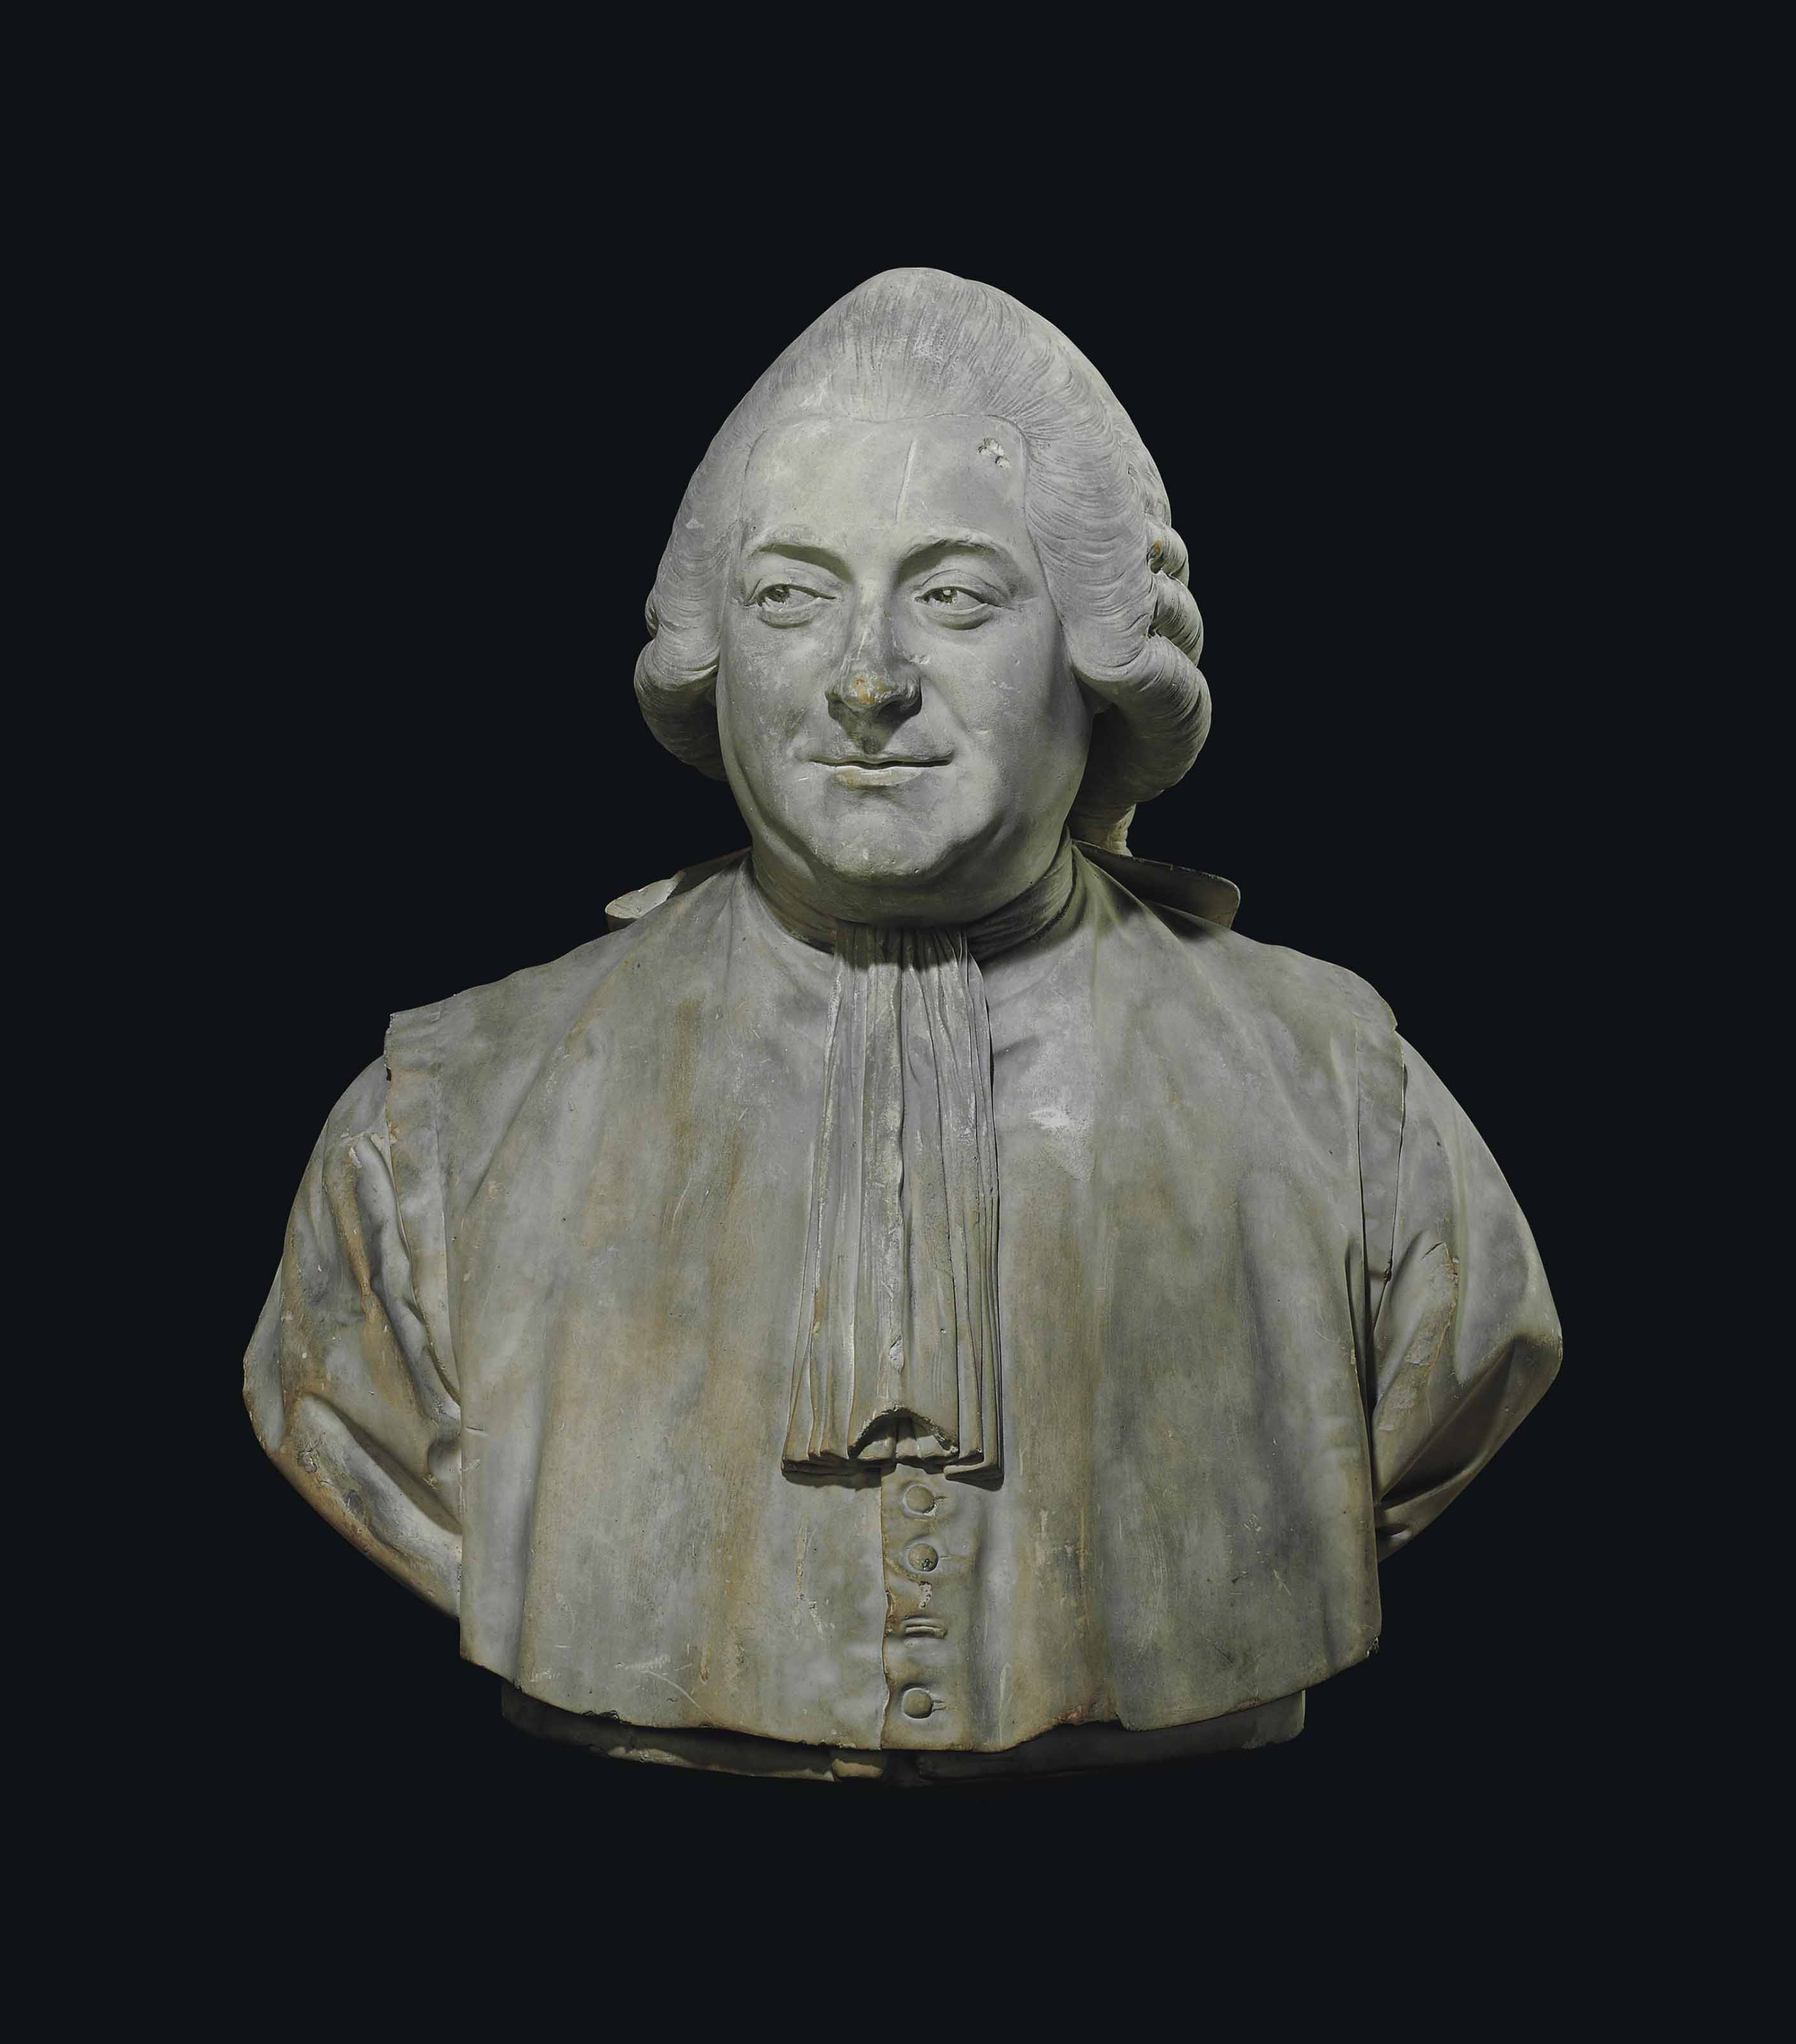 A PLASTER BUST OF JEAN-PIERRE-CHARLES LE NOIR (1732-1807)